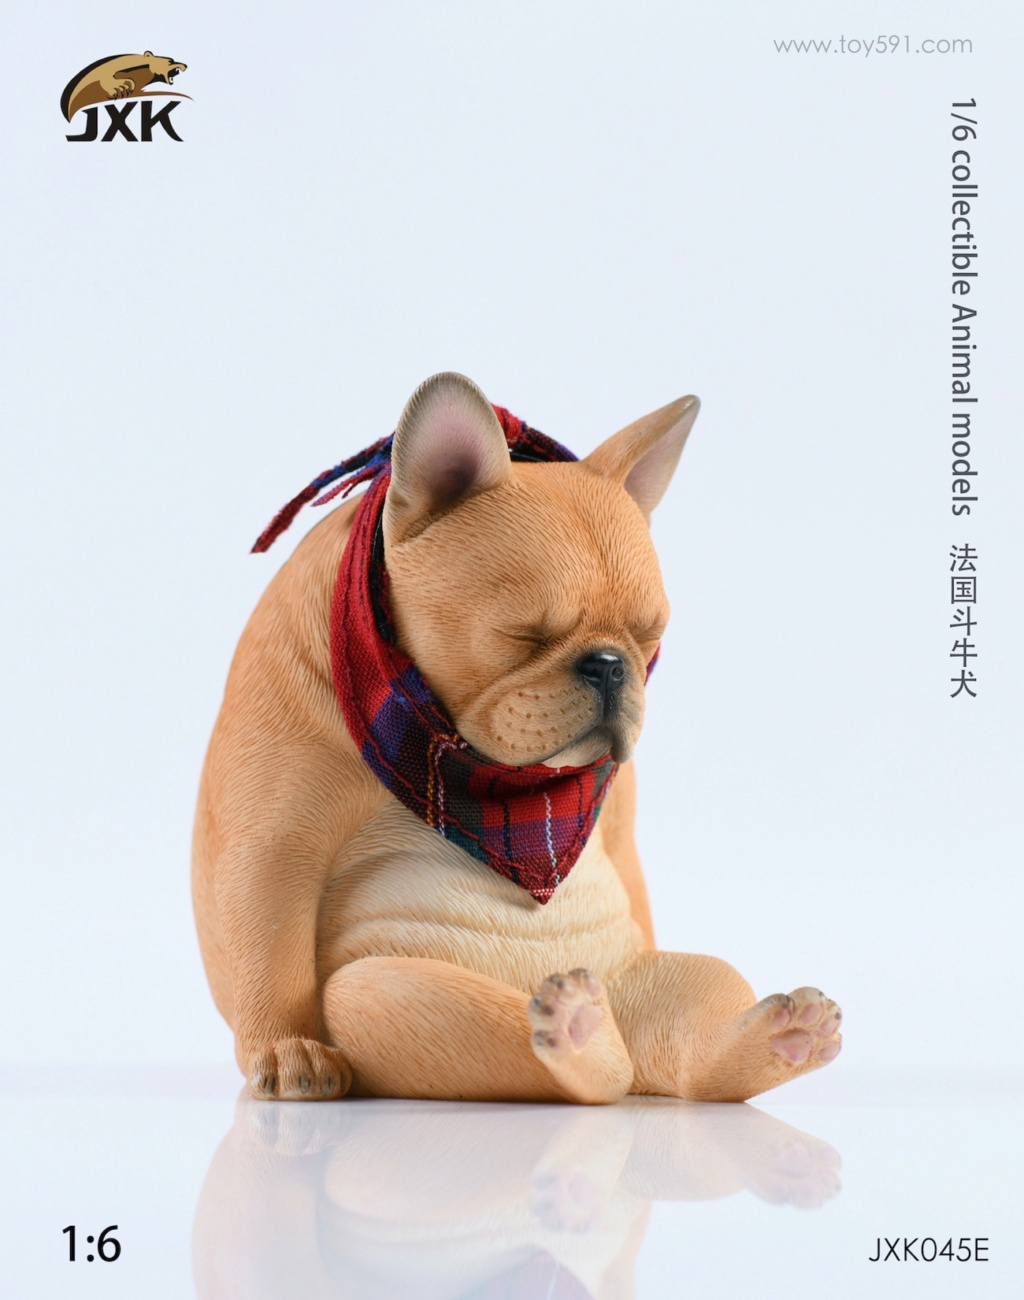 Dog - NEW PRODUCT: JXK 1/6 Decadent Dog JXK045 French Bulldog + Scarf 8e8eb010